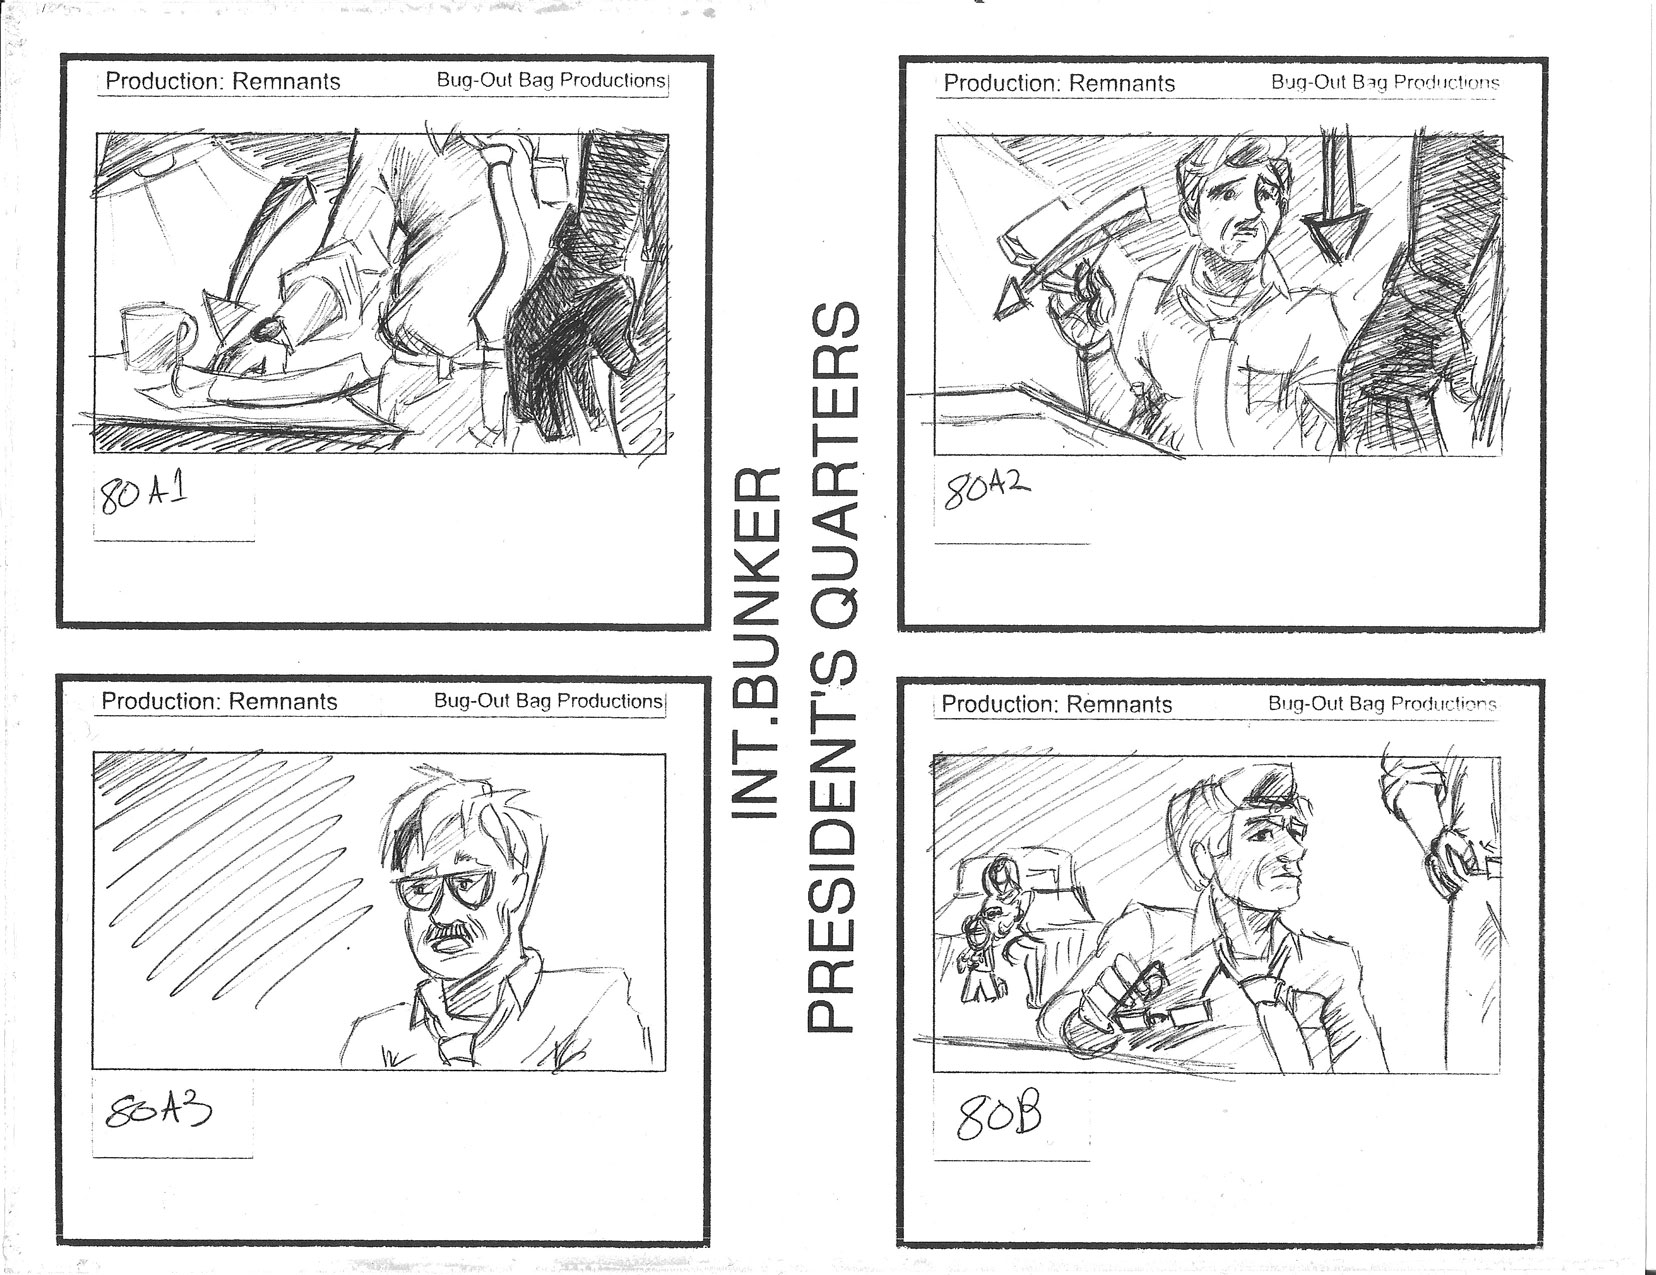 Remnants_storyboards_029.jpg